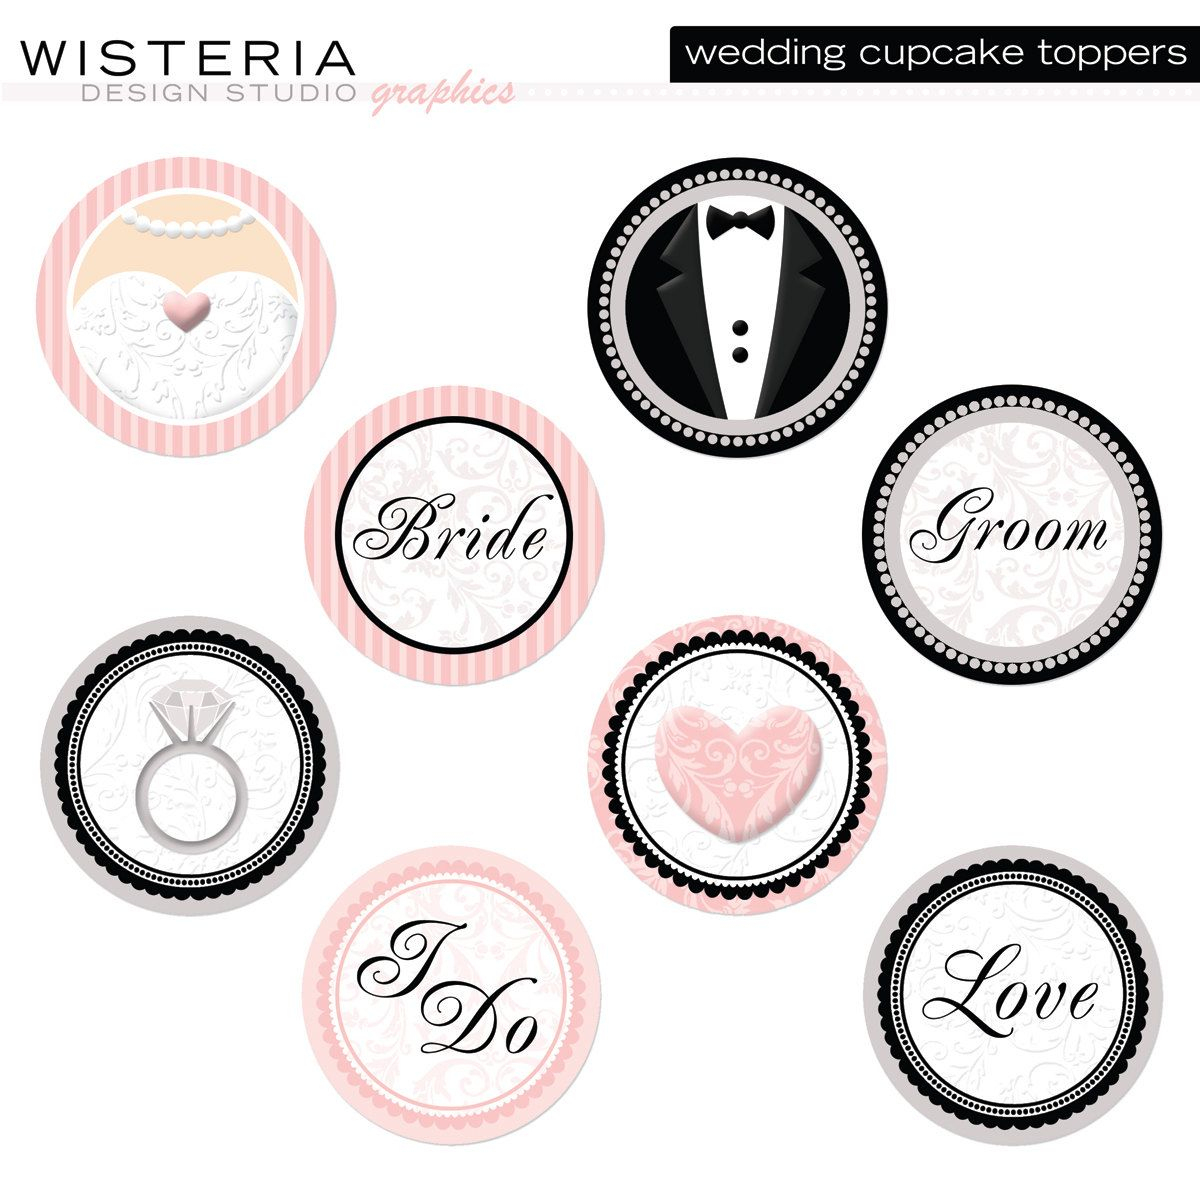 Wedding Cupcake Toppers - Diy Printables - Instant Download - Free Printable Whale Cupcake Toppers